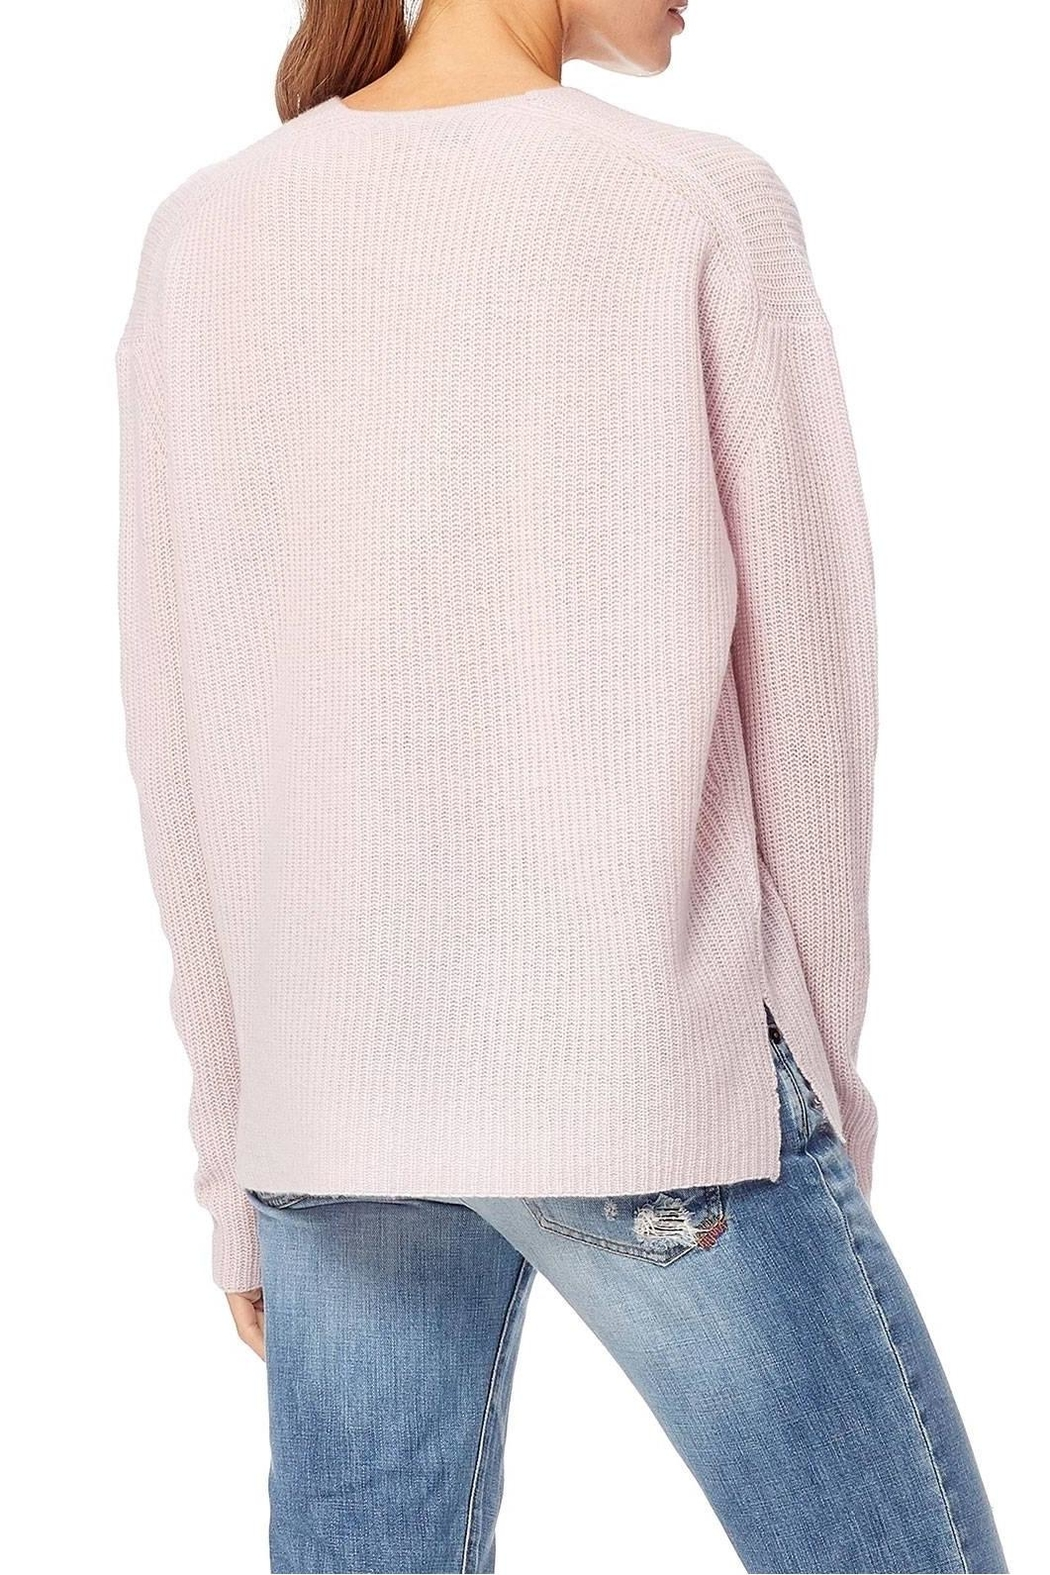 360 Cashmere Mai Vneck Sweater - Side Cropped Image